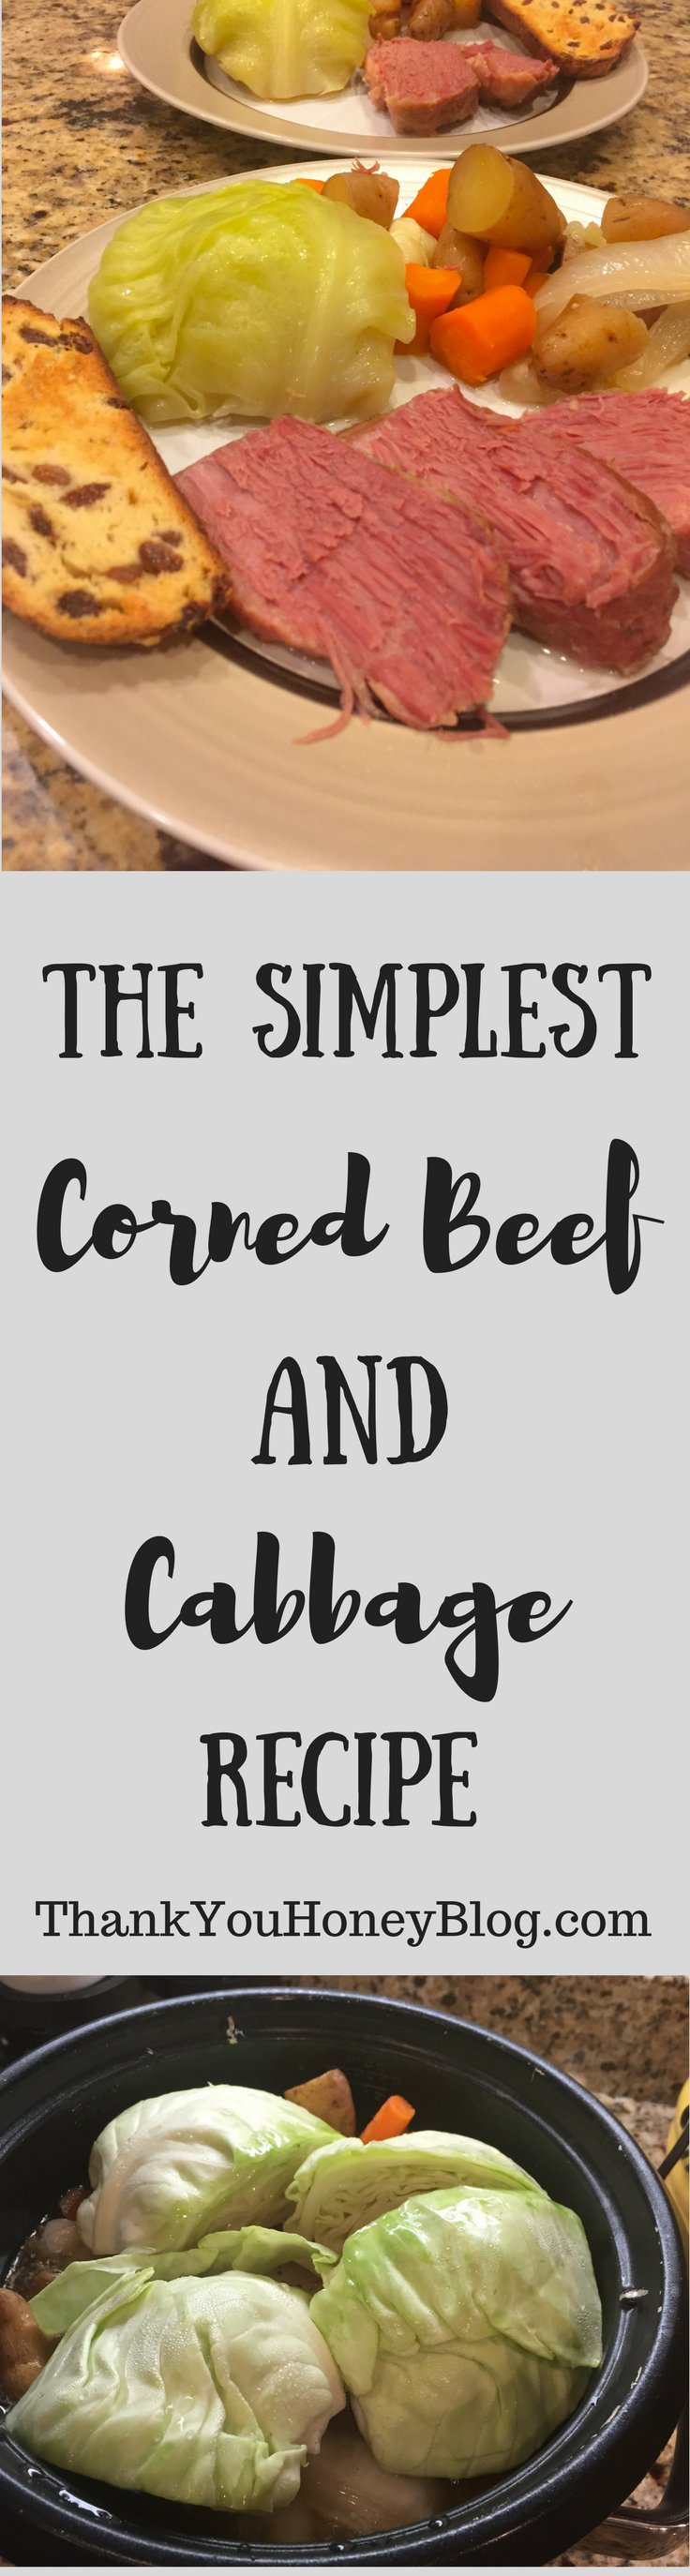 The Simplest Corned Beef and Cabbage Recipe